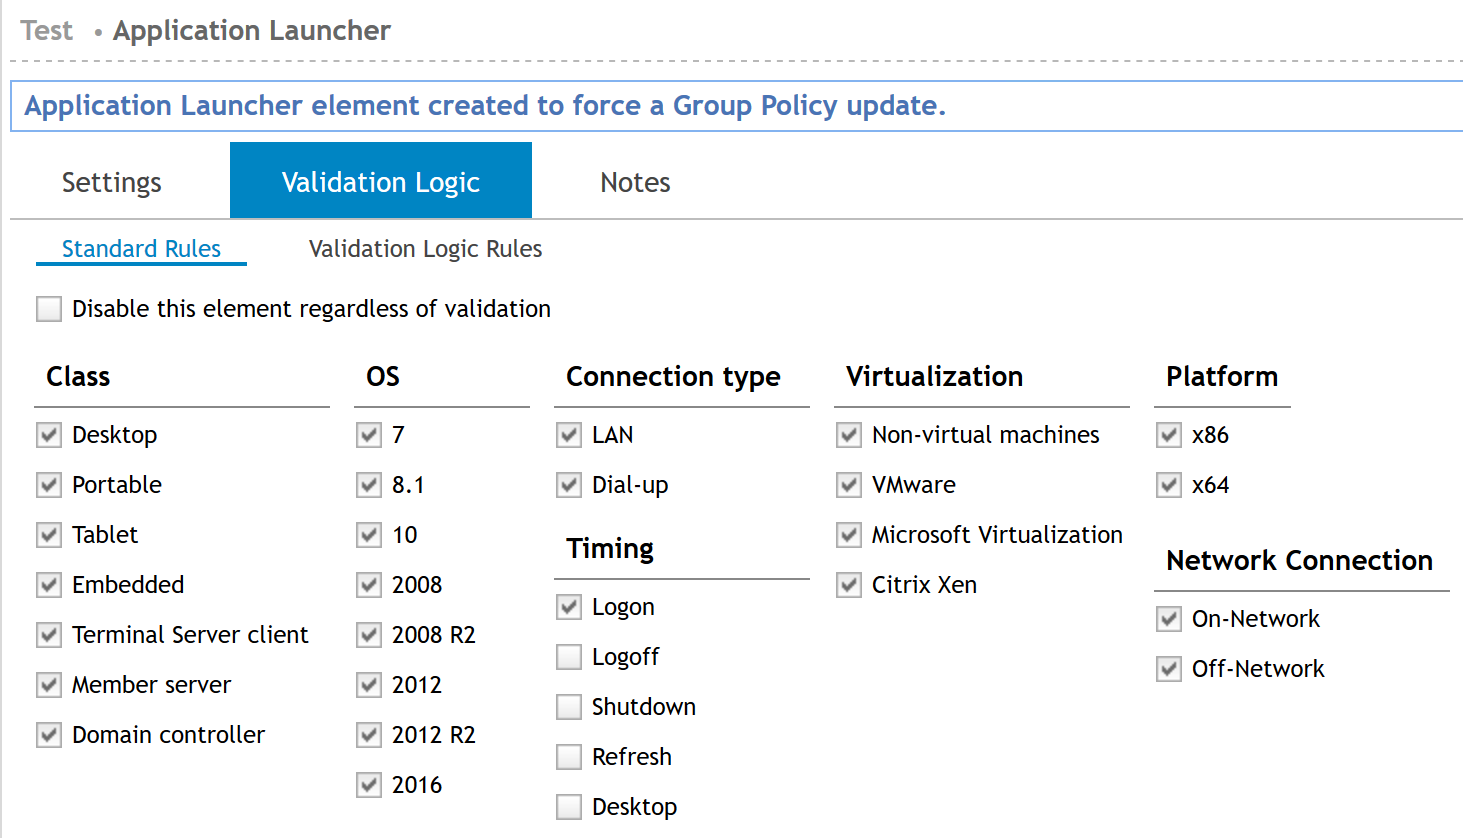 Application Launcher element created to force a group policy update validation logic